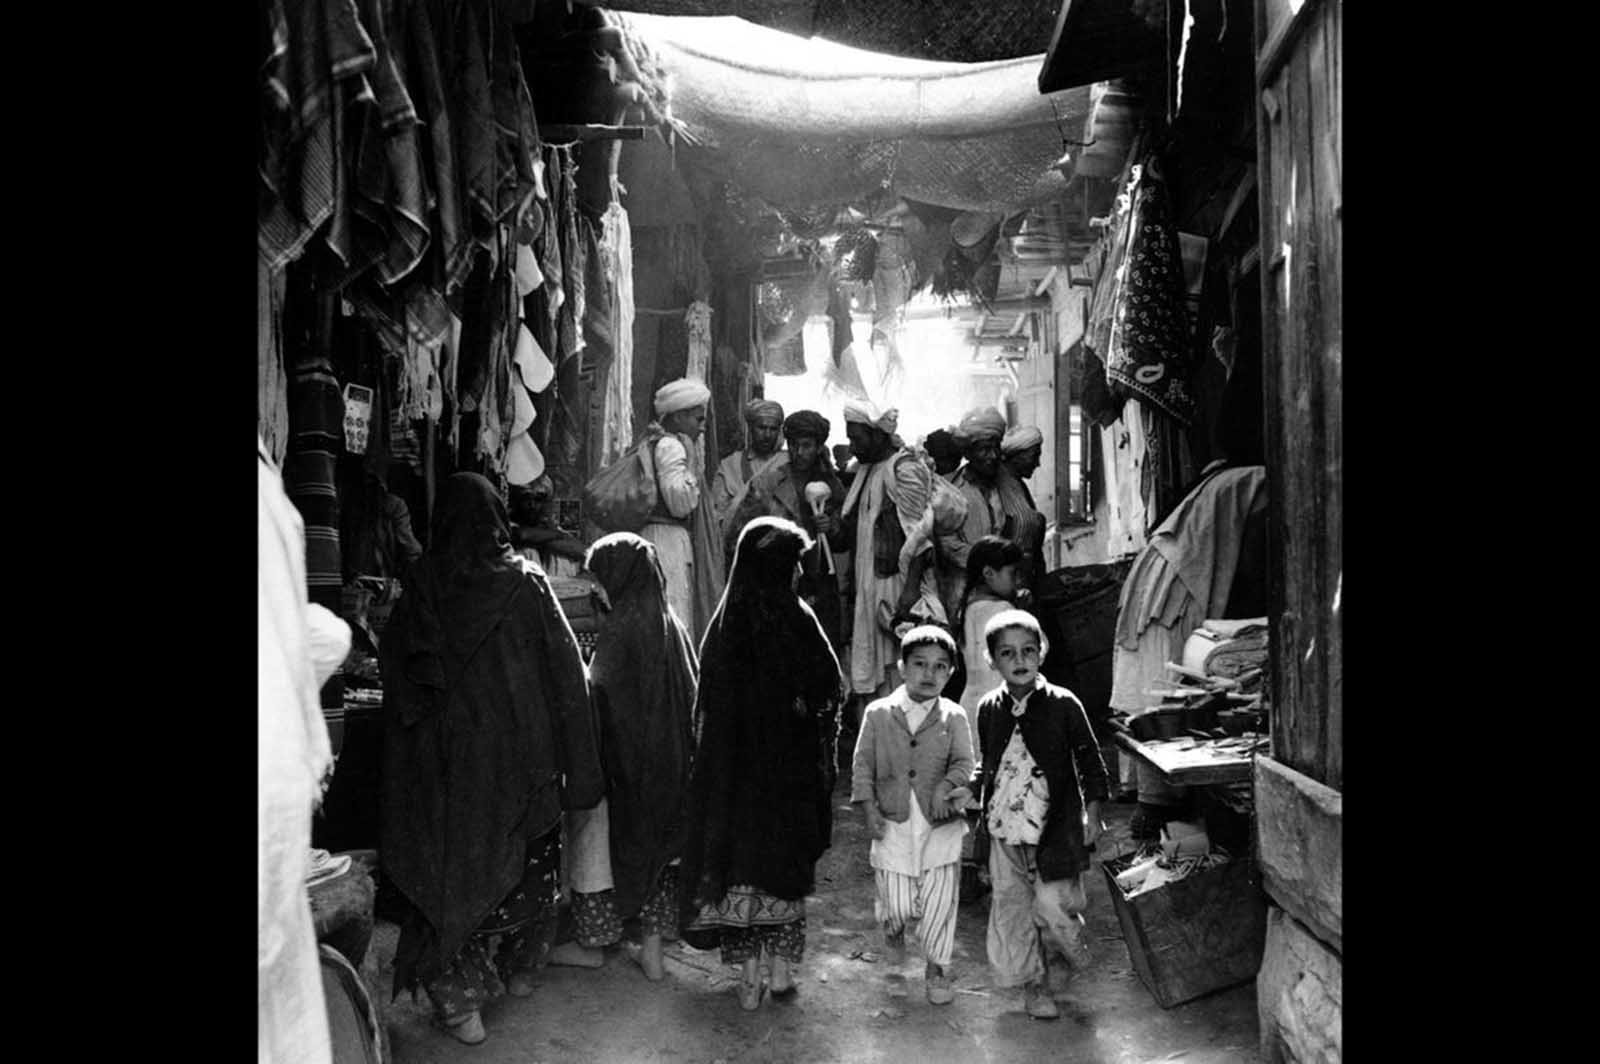 Afghan boys, men, and women, some in bare feet, shop at a marketplace in Kabul, Afghanistan, in May of 1964.